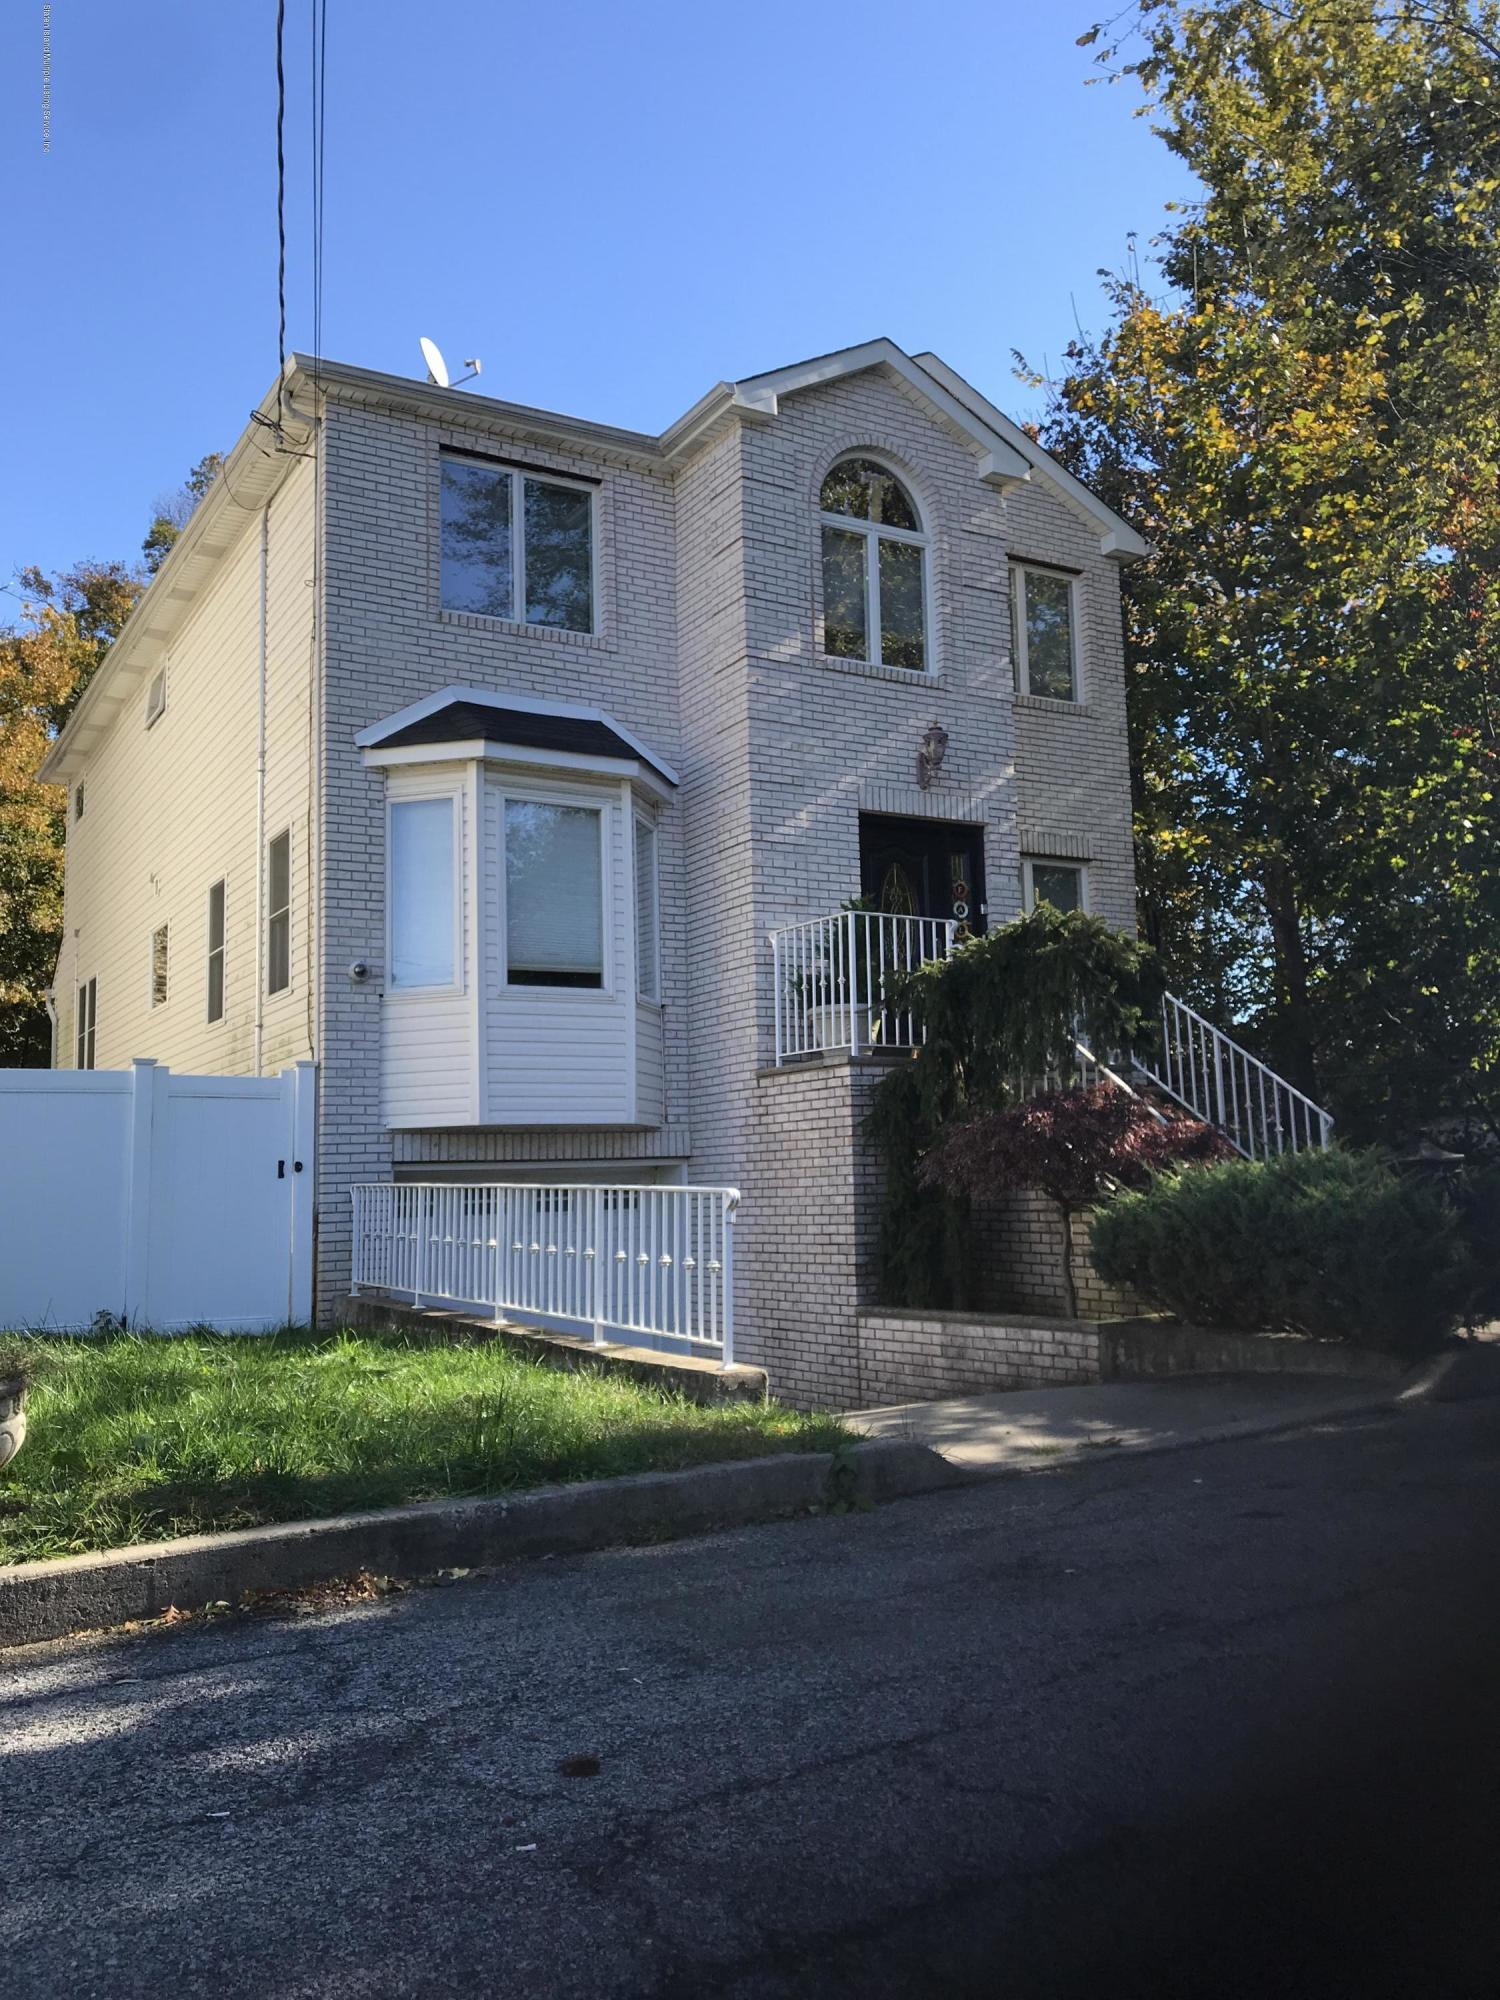 Single Family - Detached 20 Gabrielle Court  Staten Island, NY 10312, MLS-1123867-2